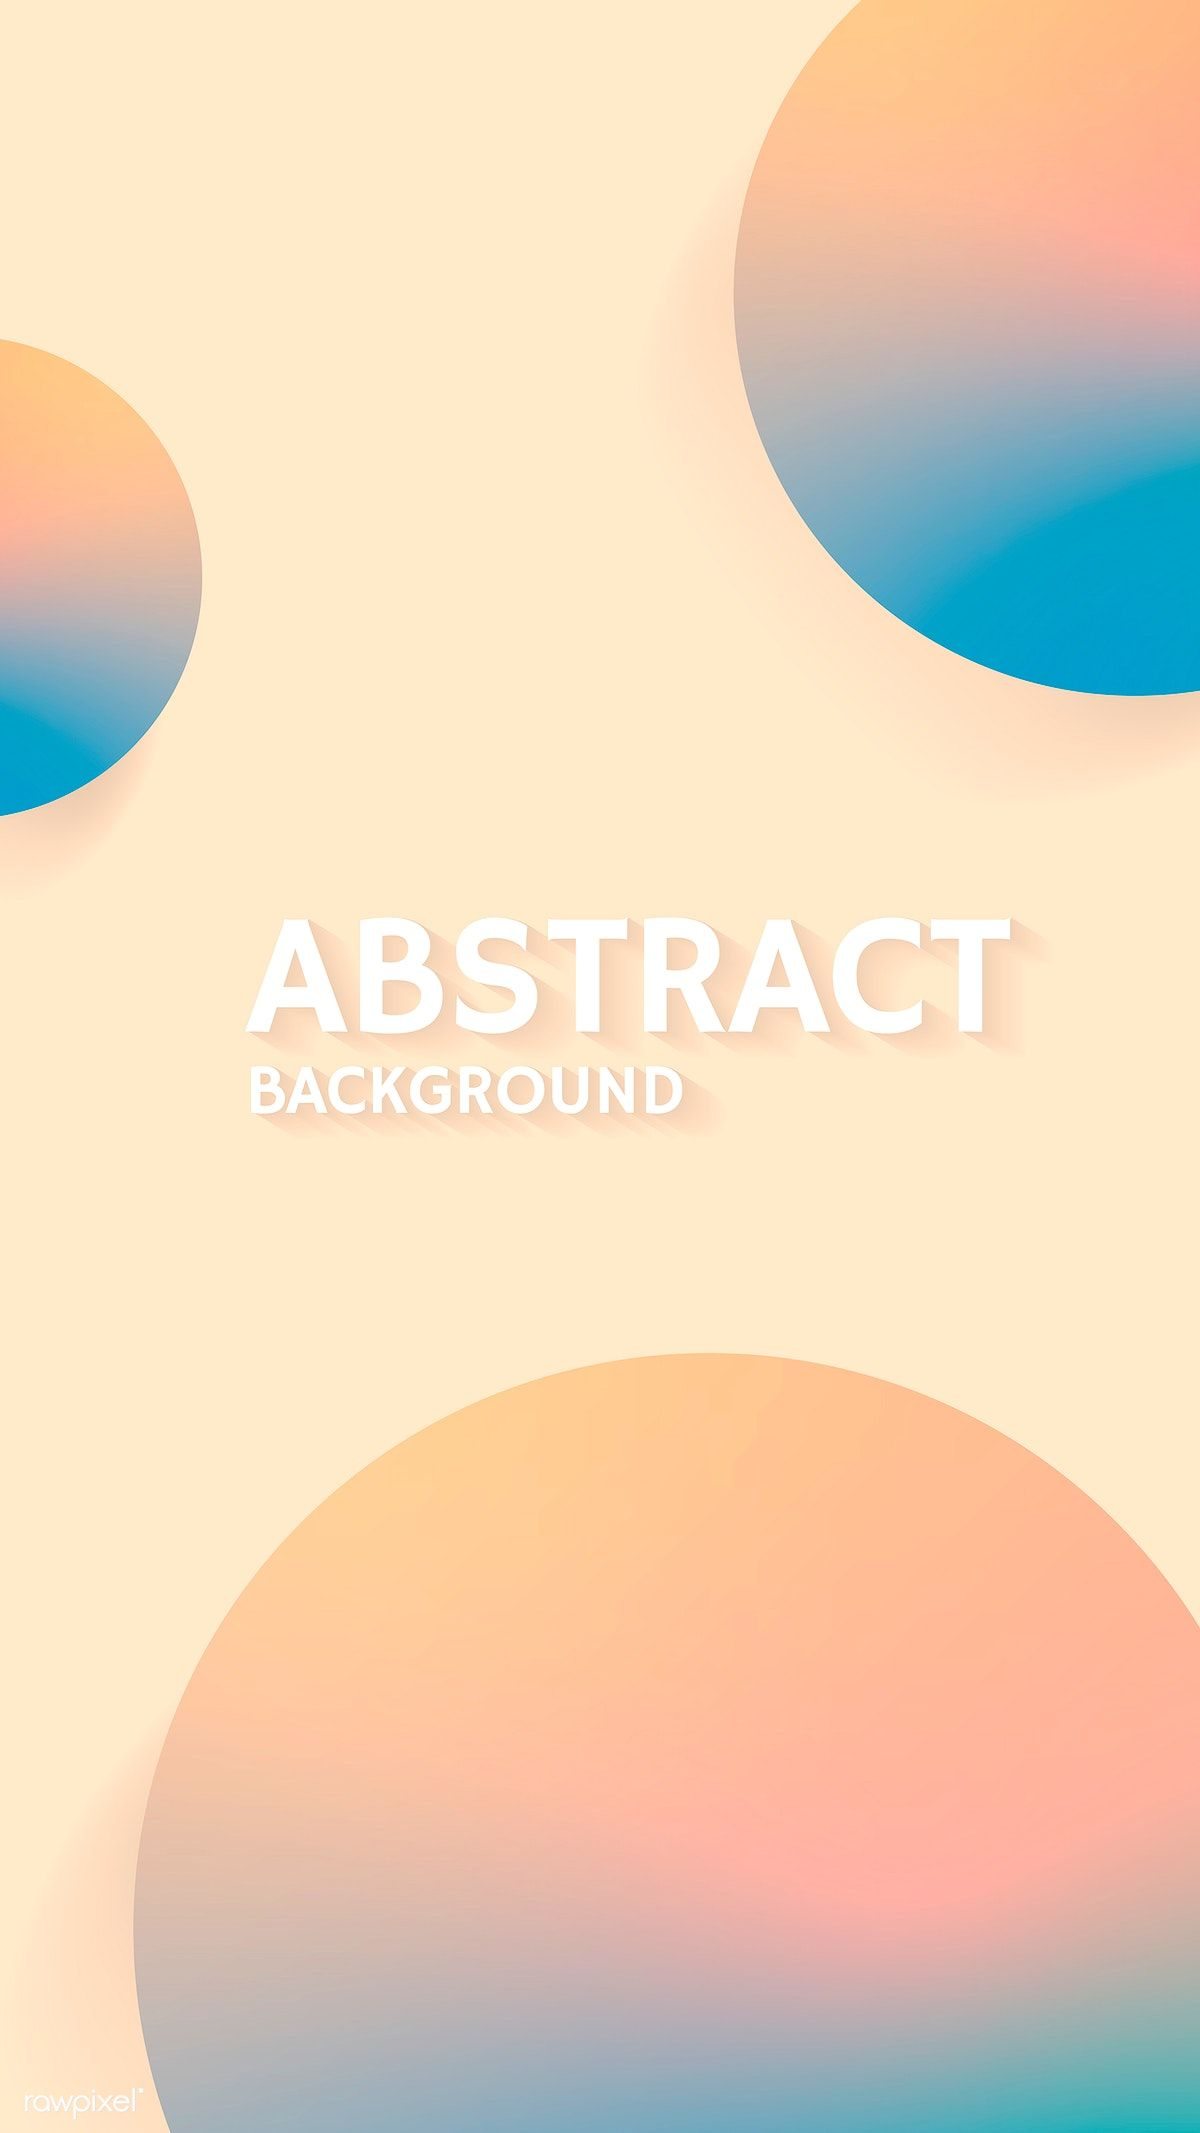 Round Cream Abstract Background Vector Free Image By Rawpixel